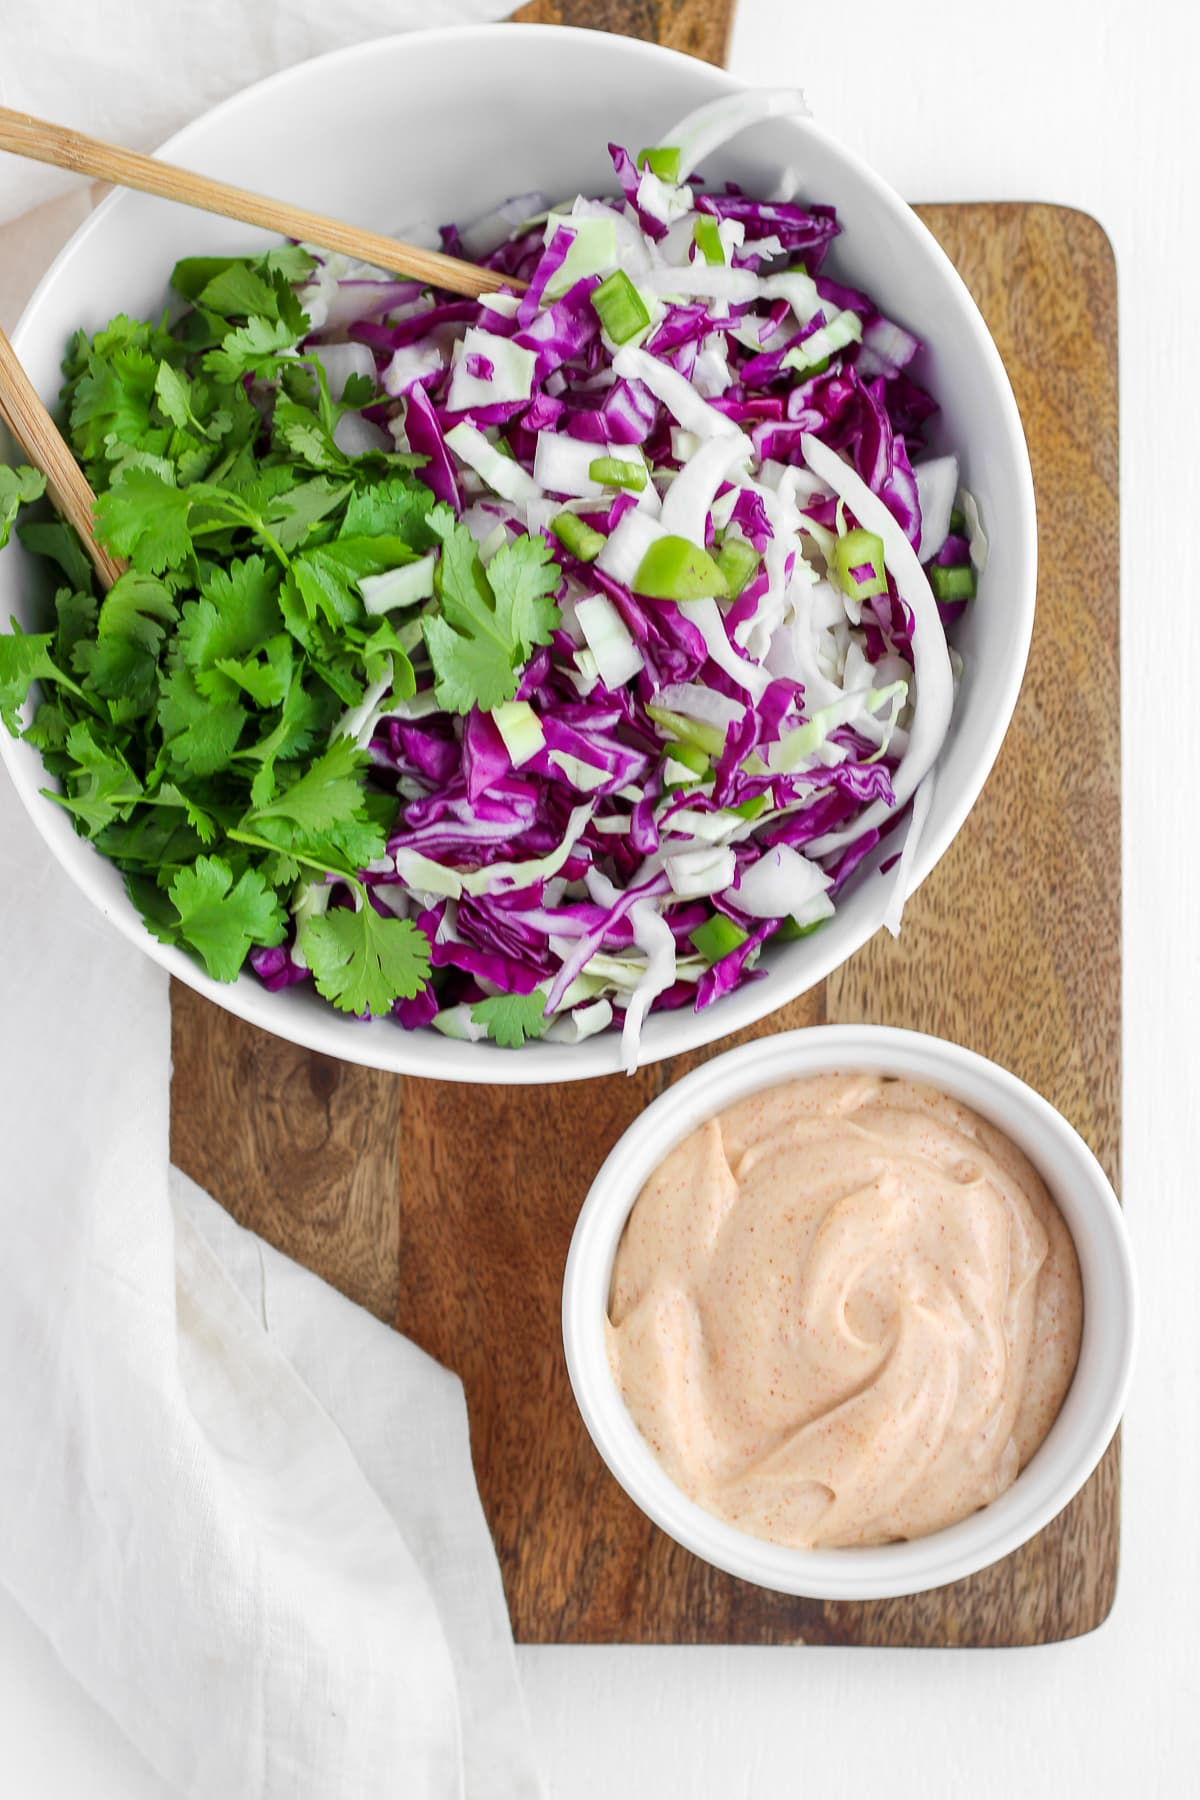 Creamy Purple Cabbage Coleslaw with Cilantro and Anaheim Peppers - the perfect coleslaw for any meal! #whole30 #coleslaw #cookout